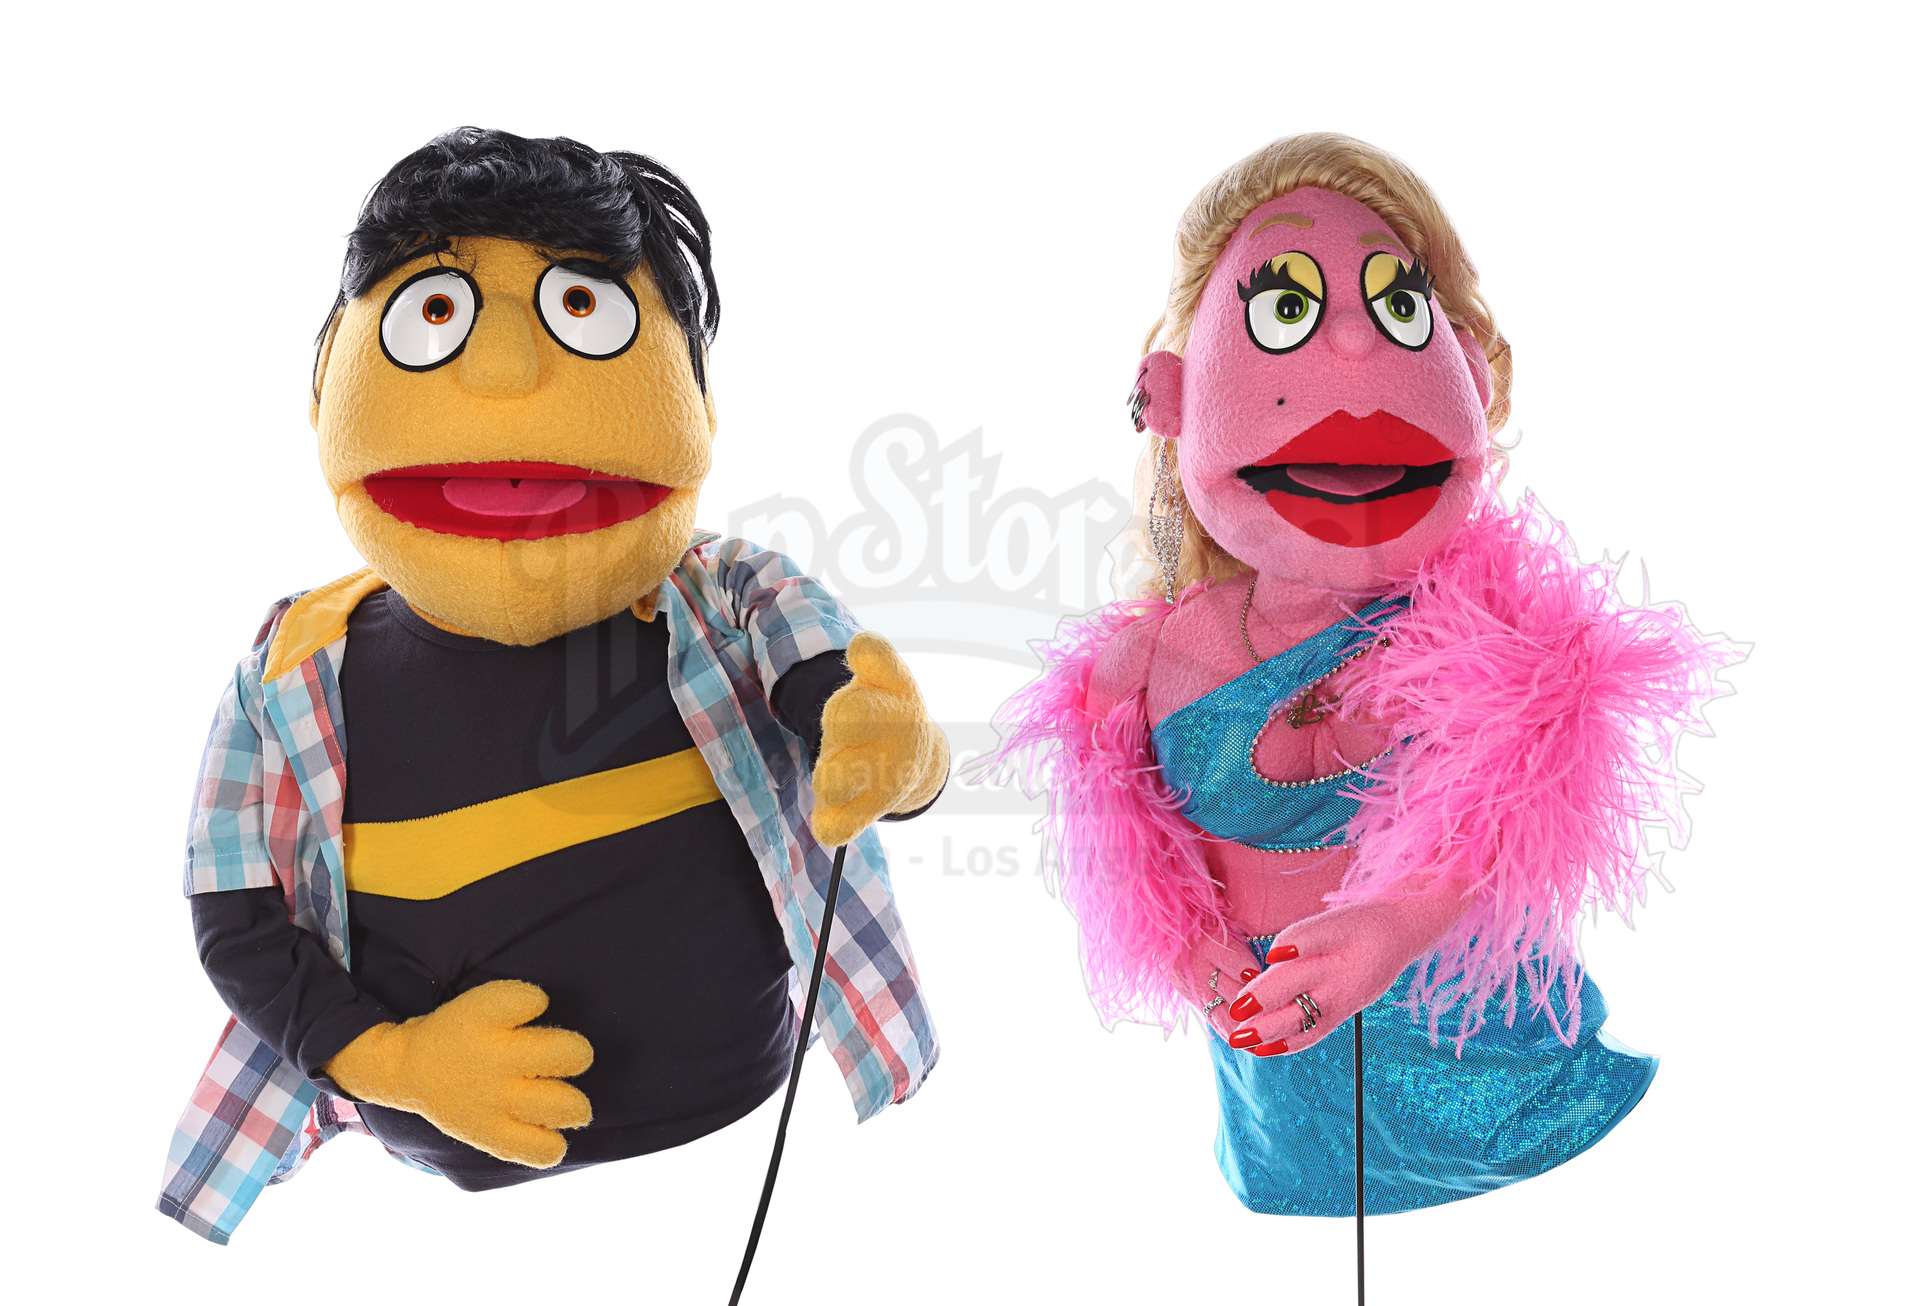 AVENUE Q (STAGE SHOW) - Lucy the Slut and Princeton Puppets